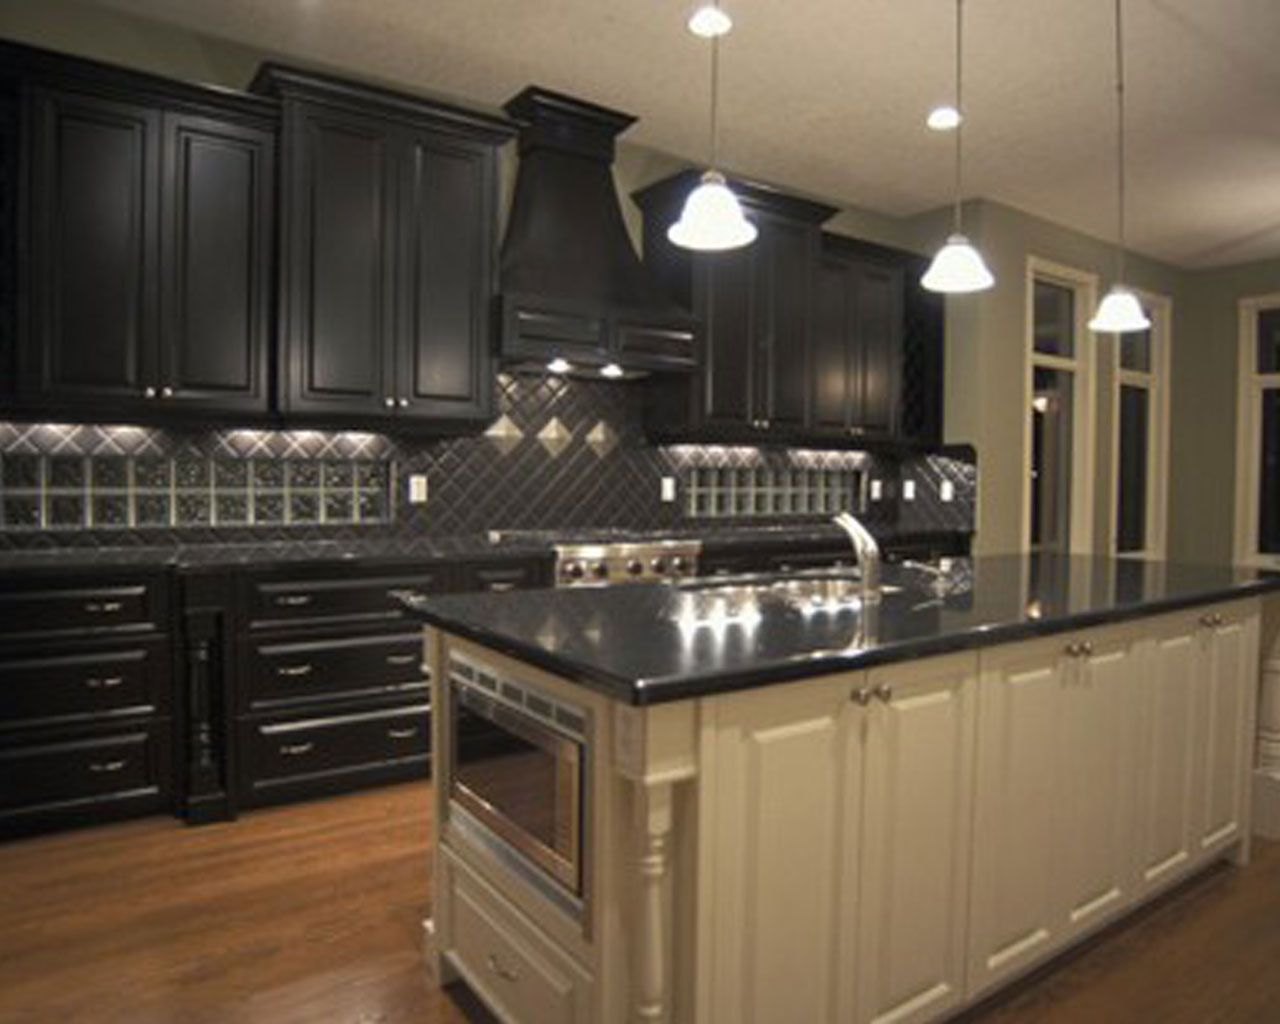 finest design black kitchen cabinets wallpapers - Kitchen Design Ideas Dark Cabinets